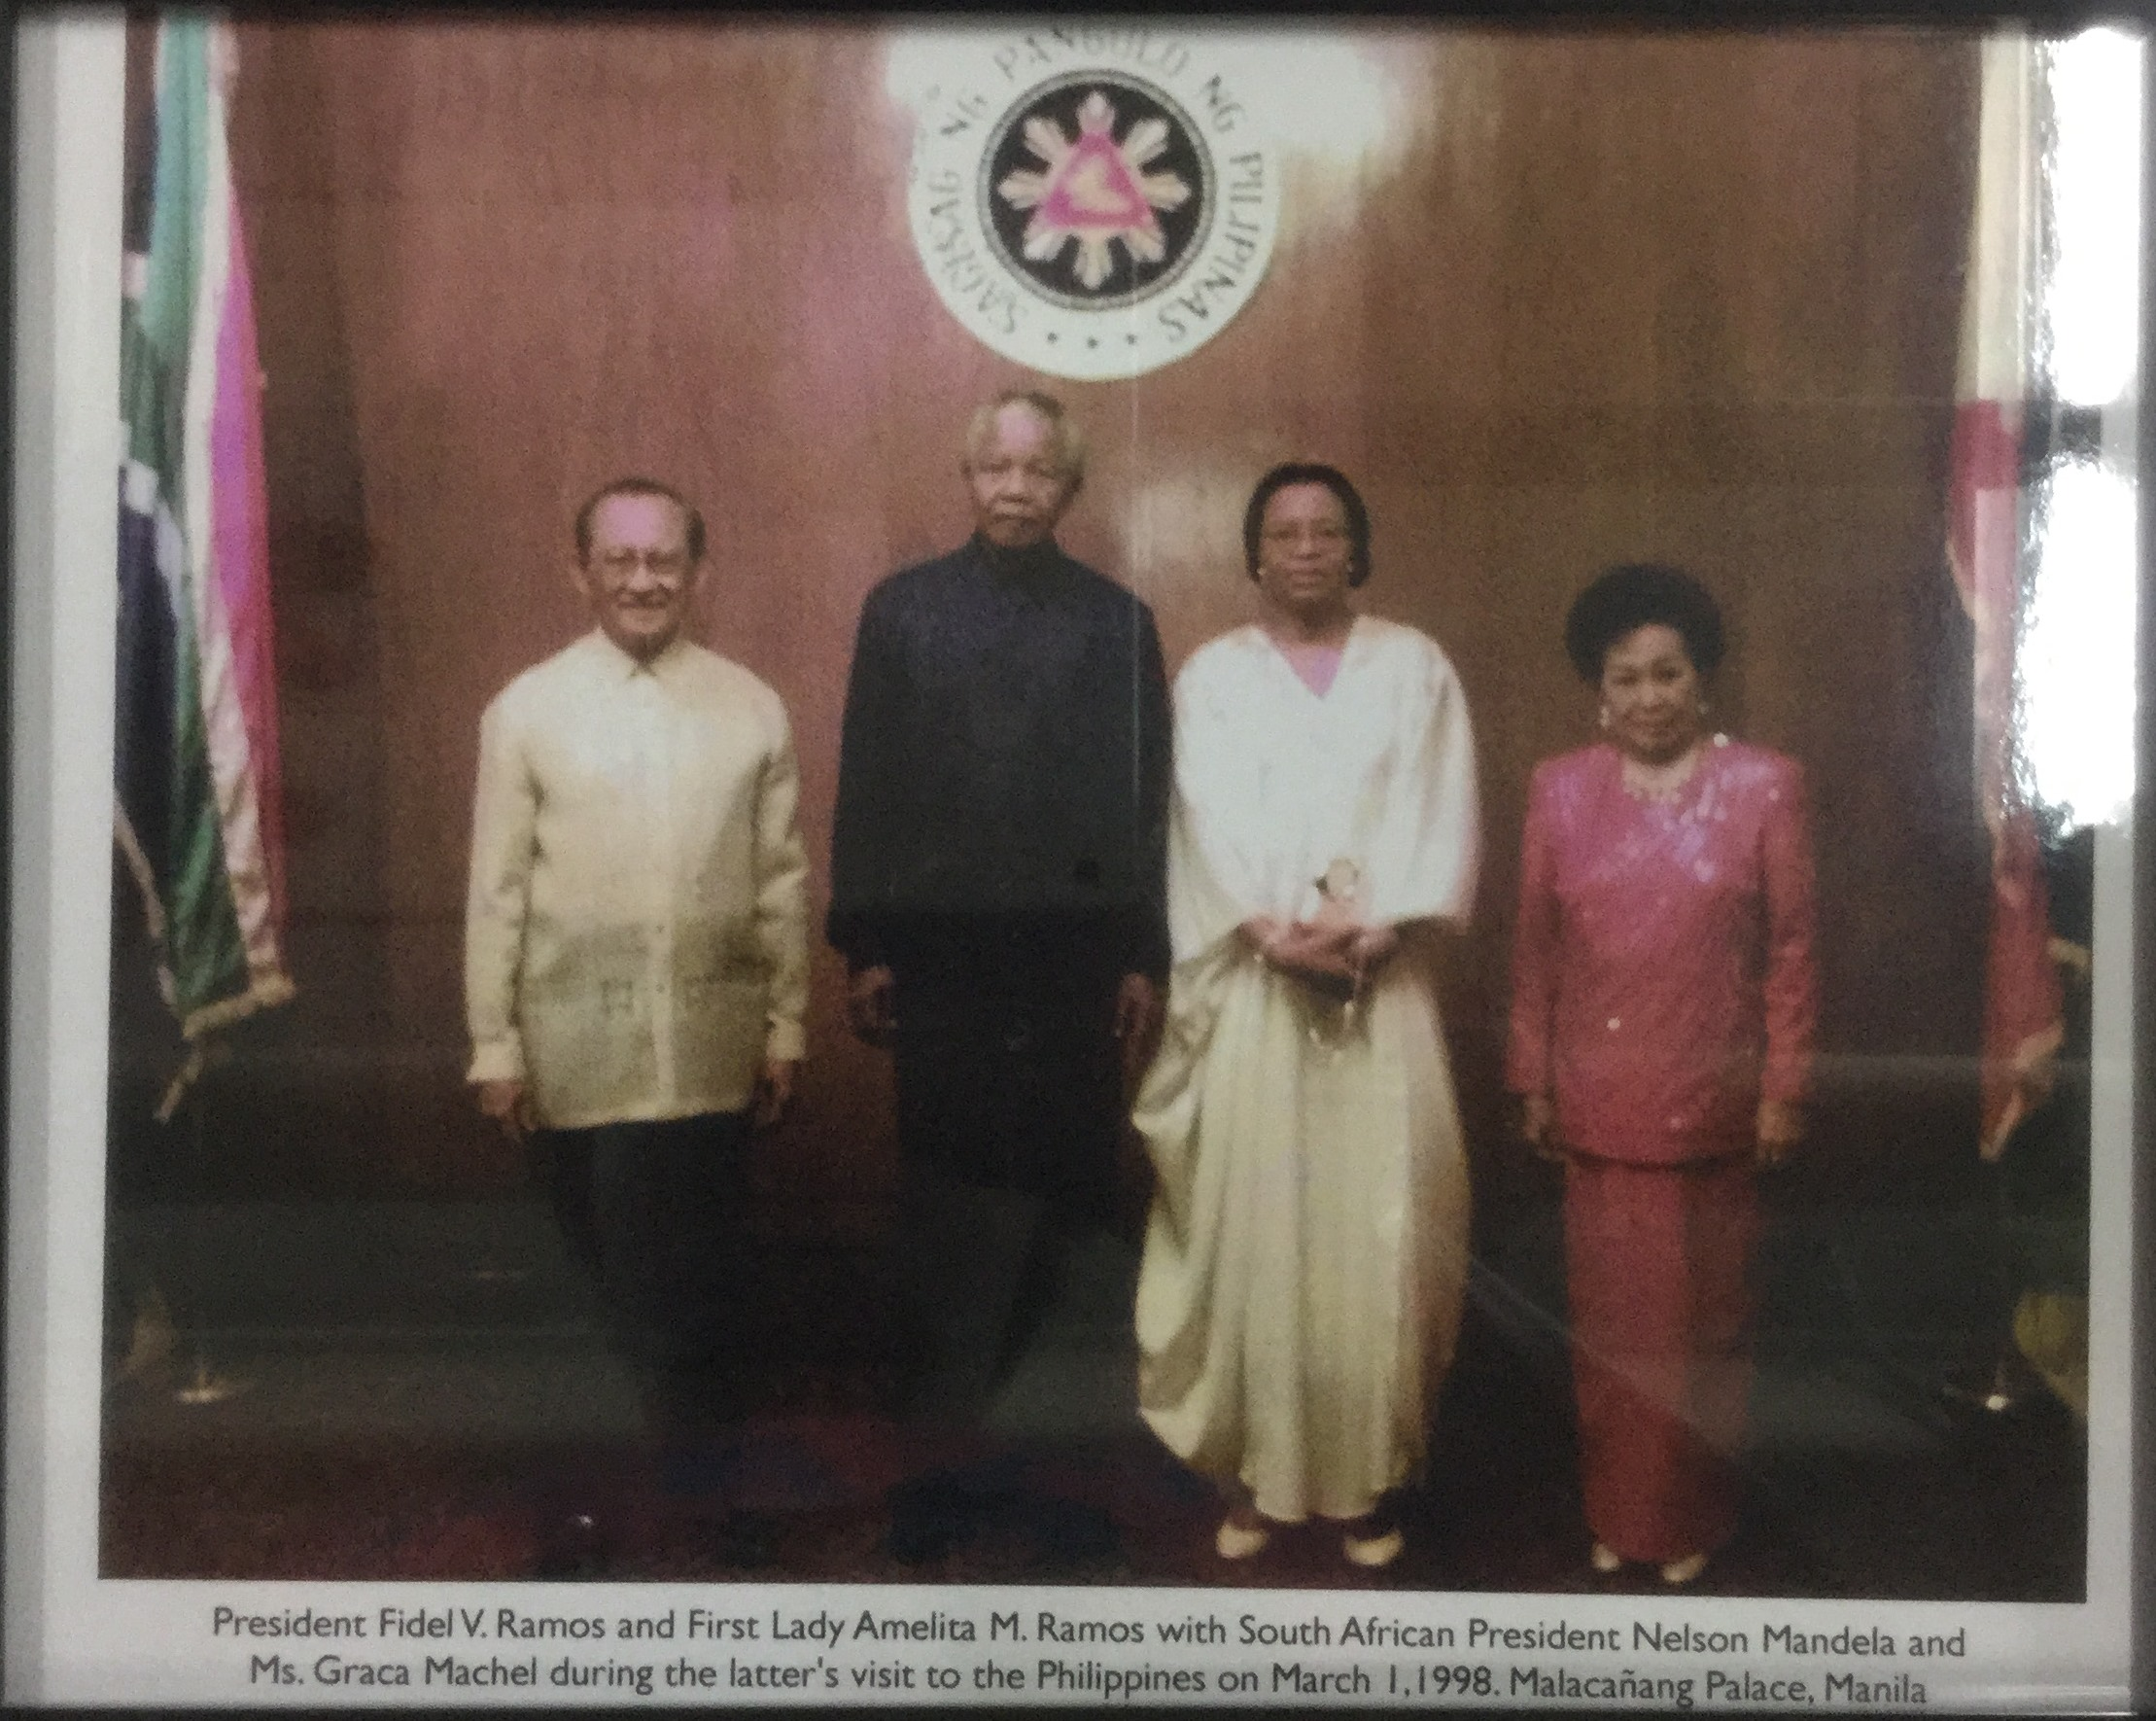 President Fidel V. Ramos and First Lady Amelita M. Ramos with South African President Nelson Mandela